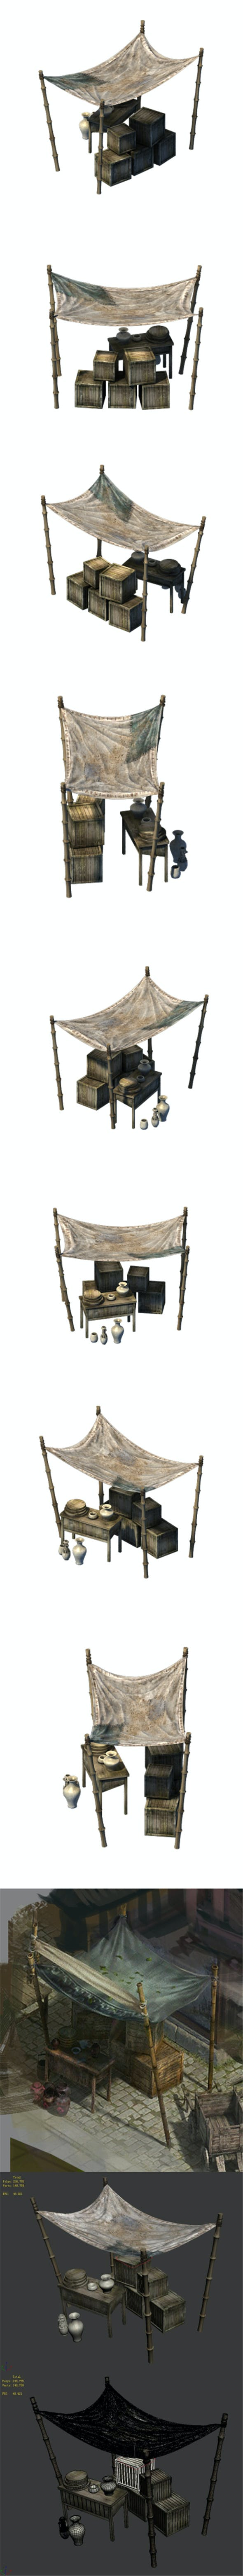 Accessories - wind are grassland - bamboo shed 01 - 3DOcean Item for Sale